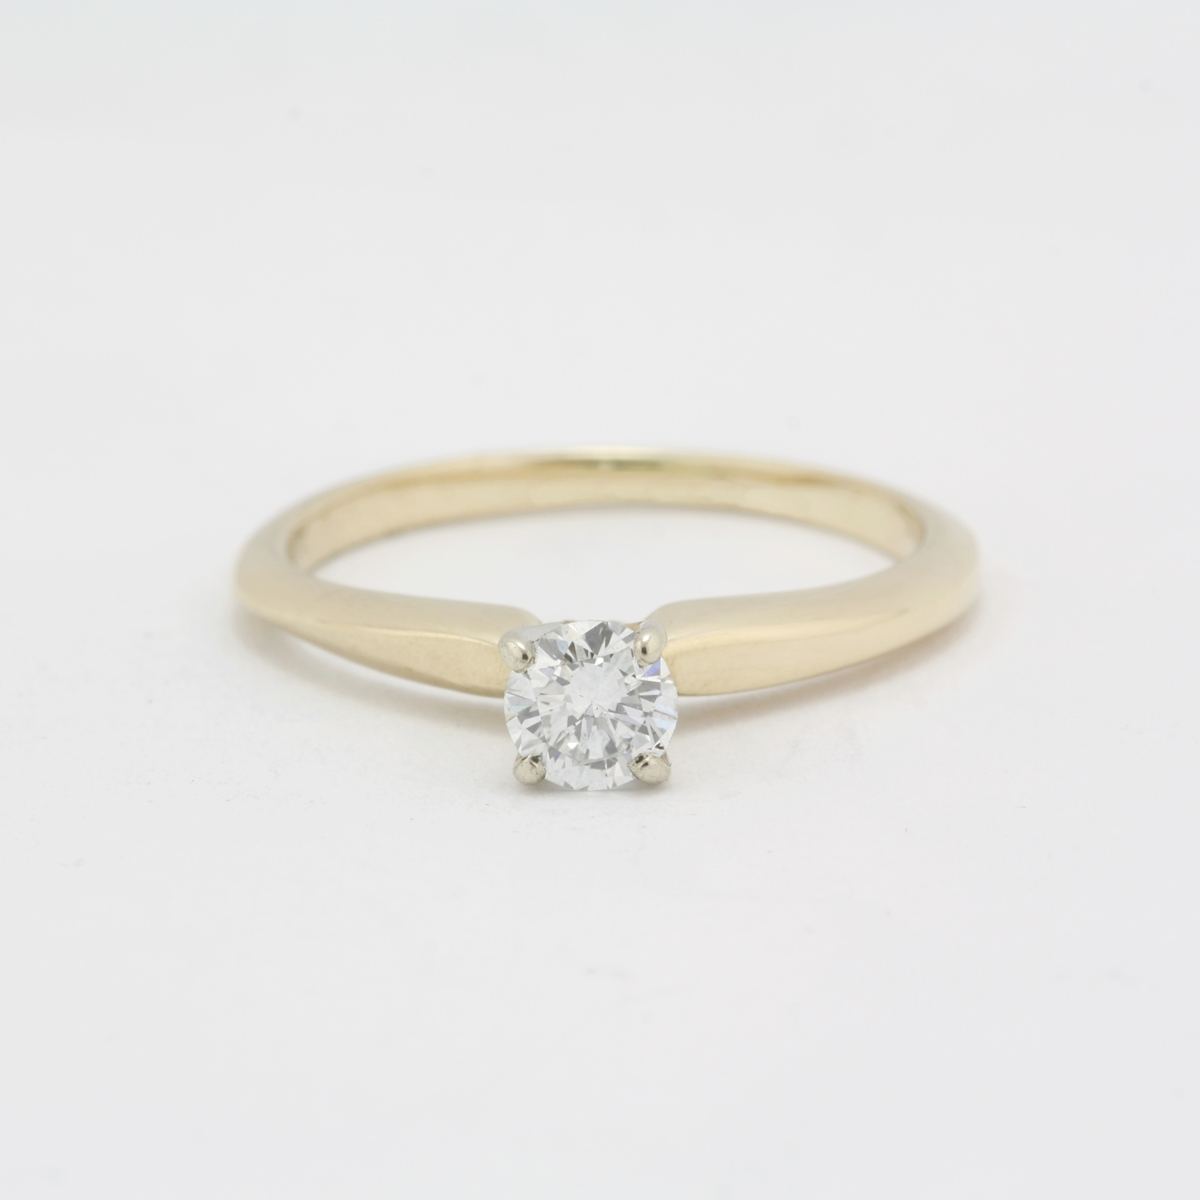 Preowned Wedding Rings: Pre-Owned Diamond Engagement Ring